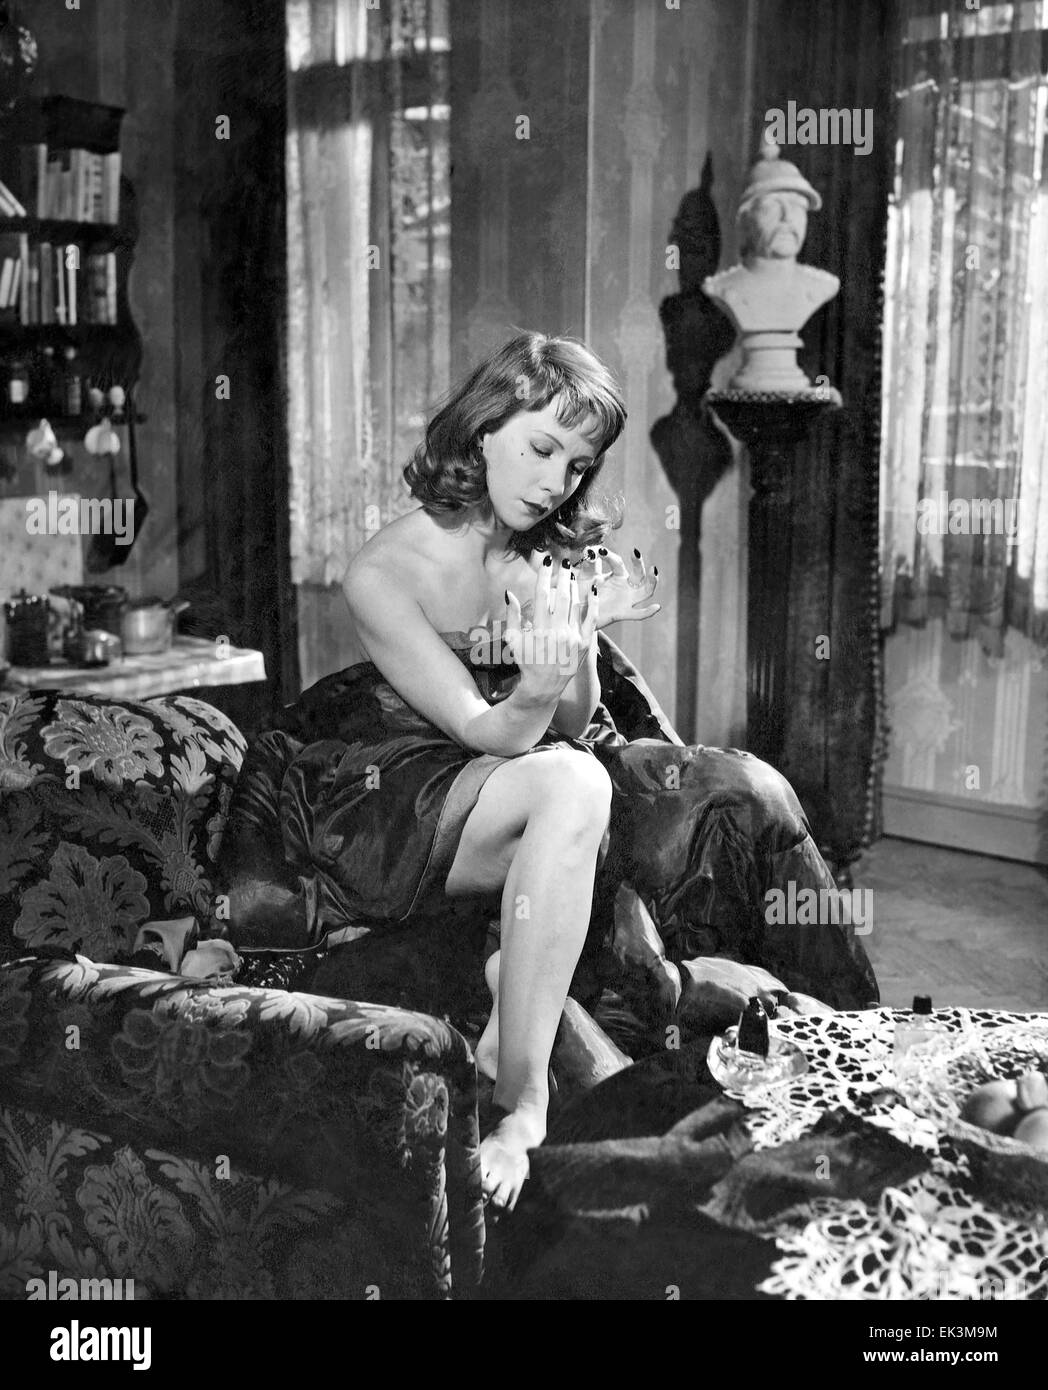 julie harris wiki